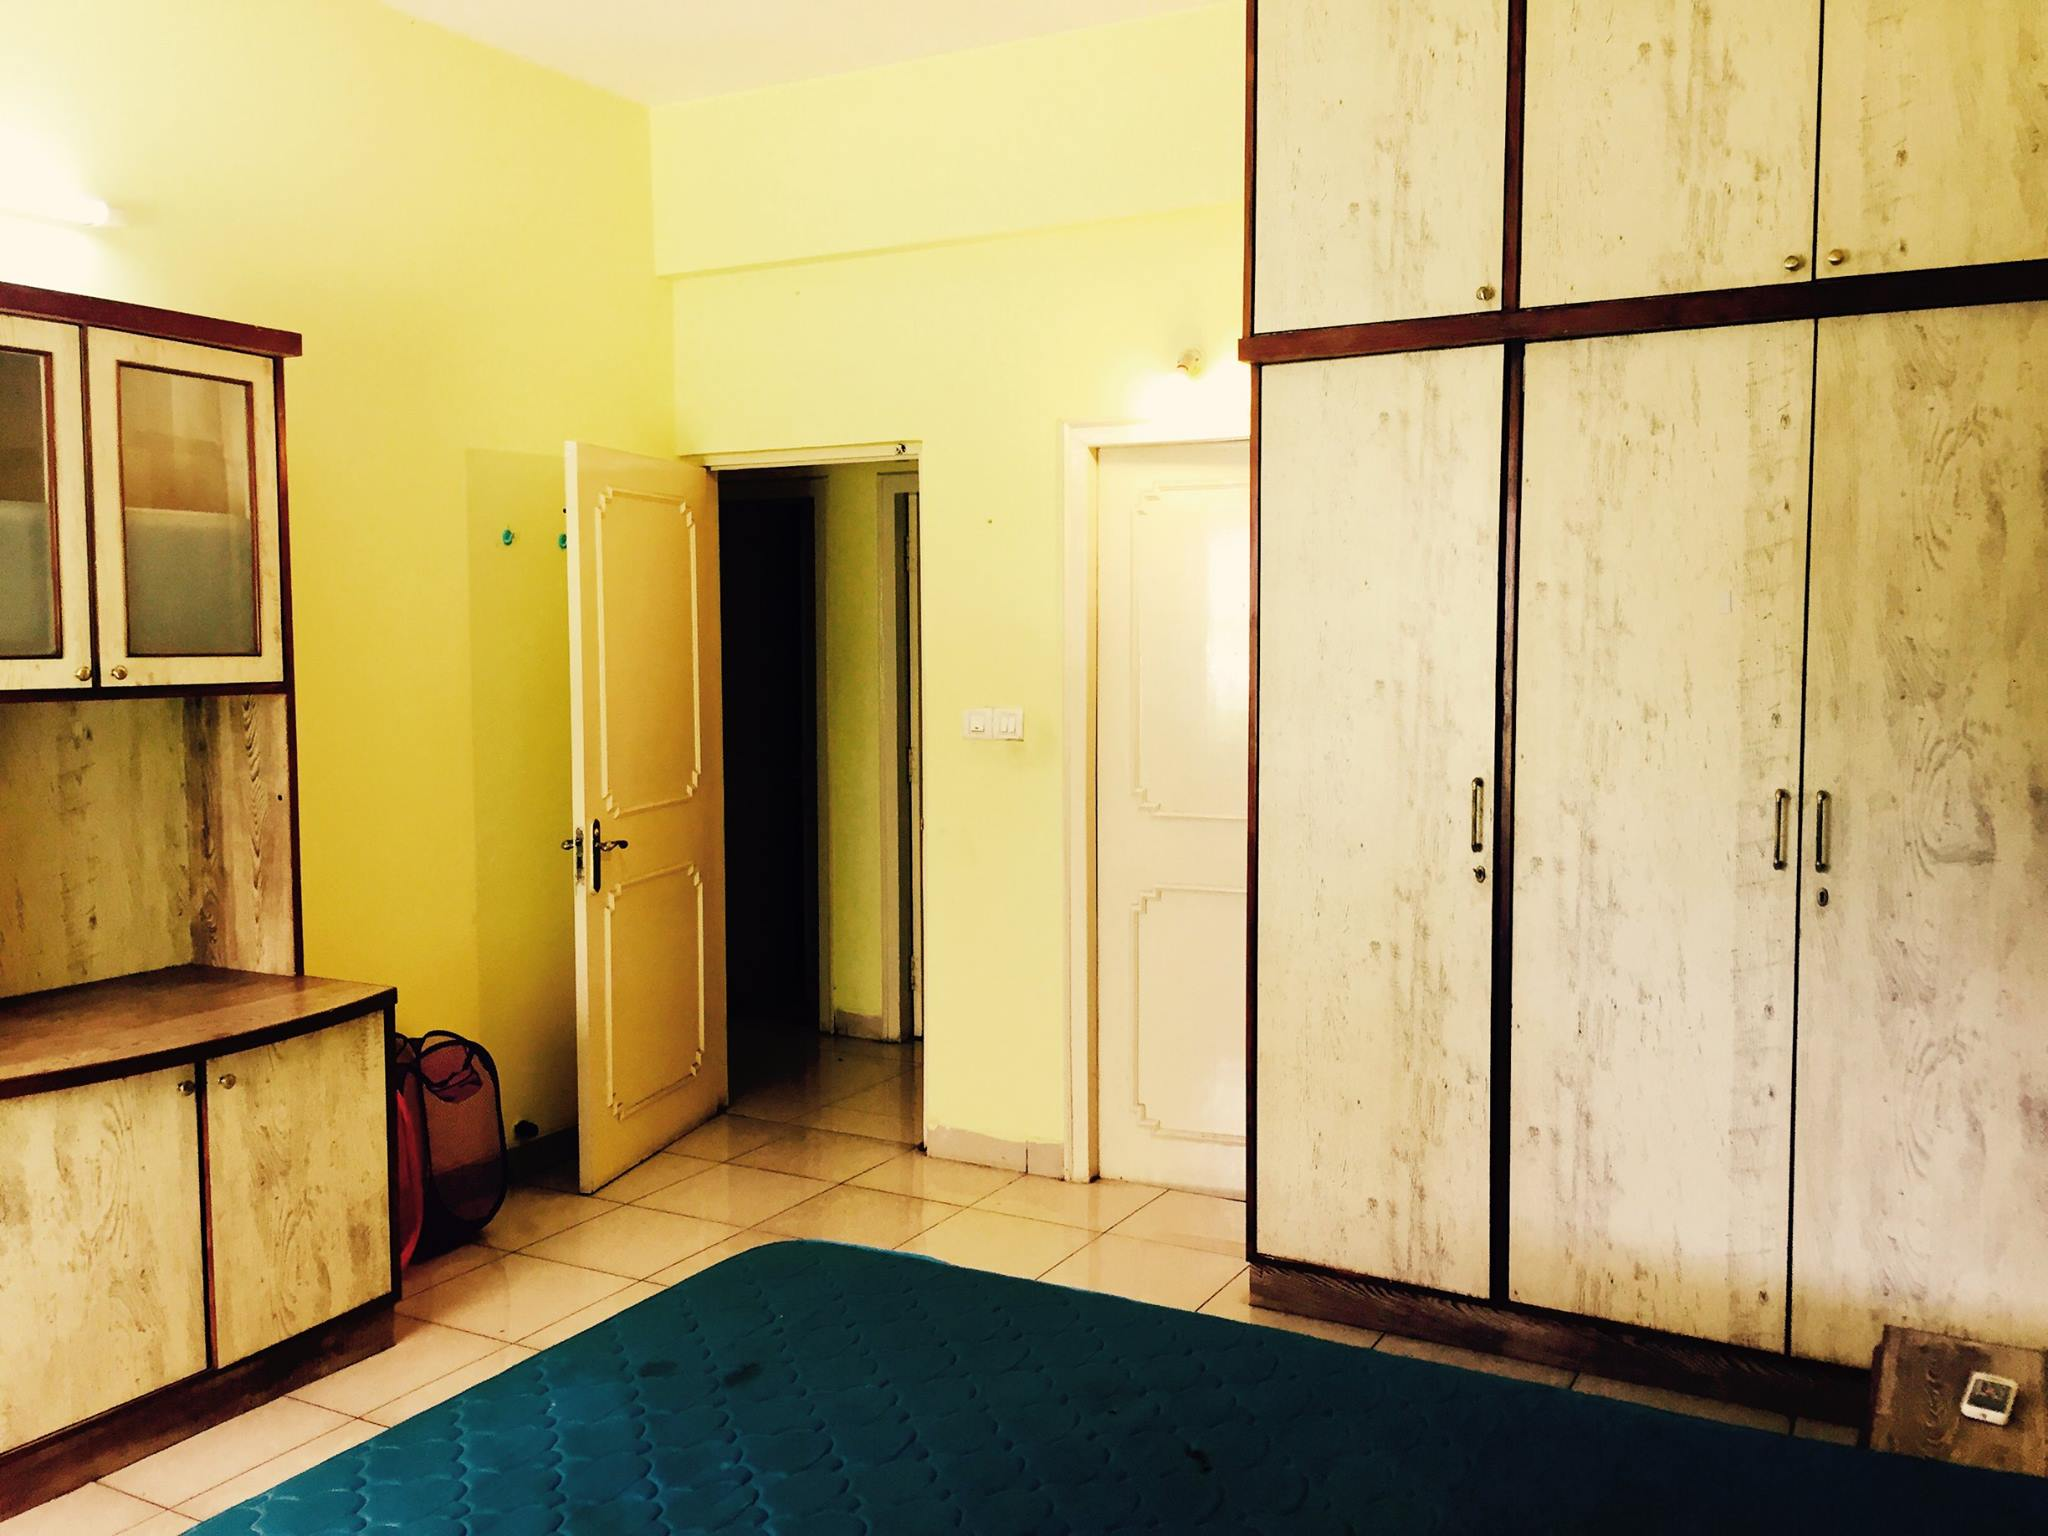 3 BHK Flat for rent in Mantri Elegance, Bannerghatta, Bangalore | Homigo